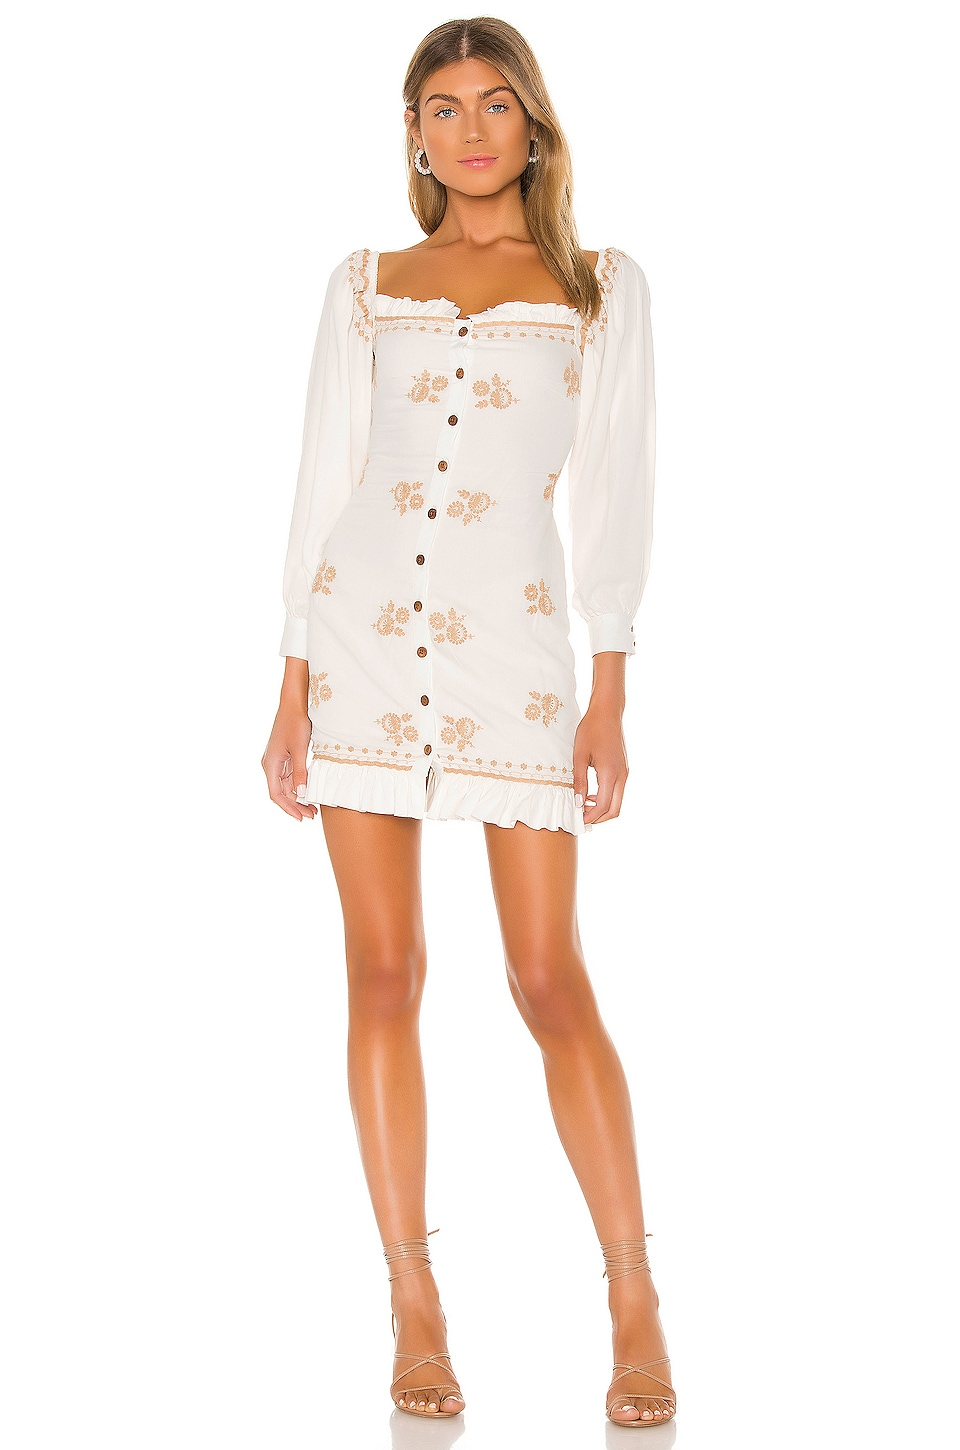 MAJORELLE Pomona Mini Dress in Vintage Ivory